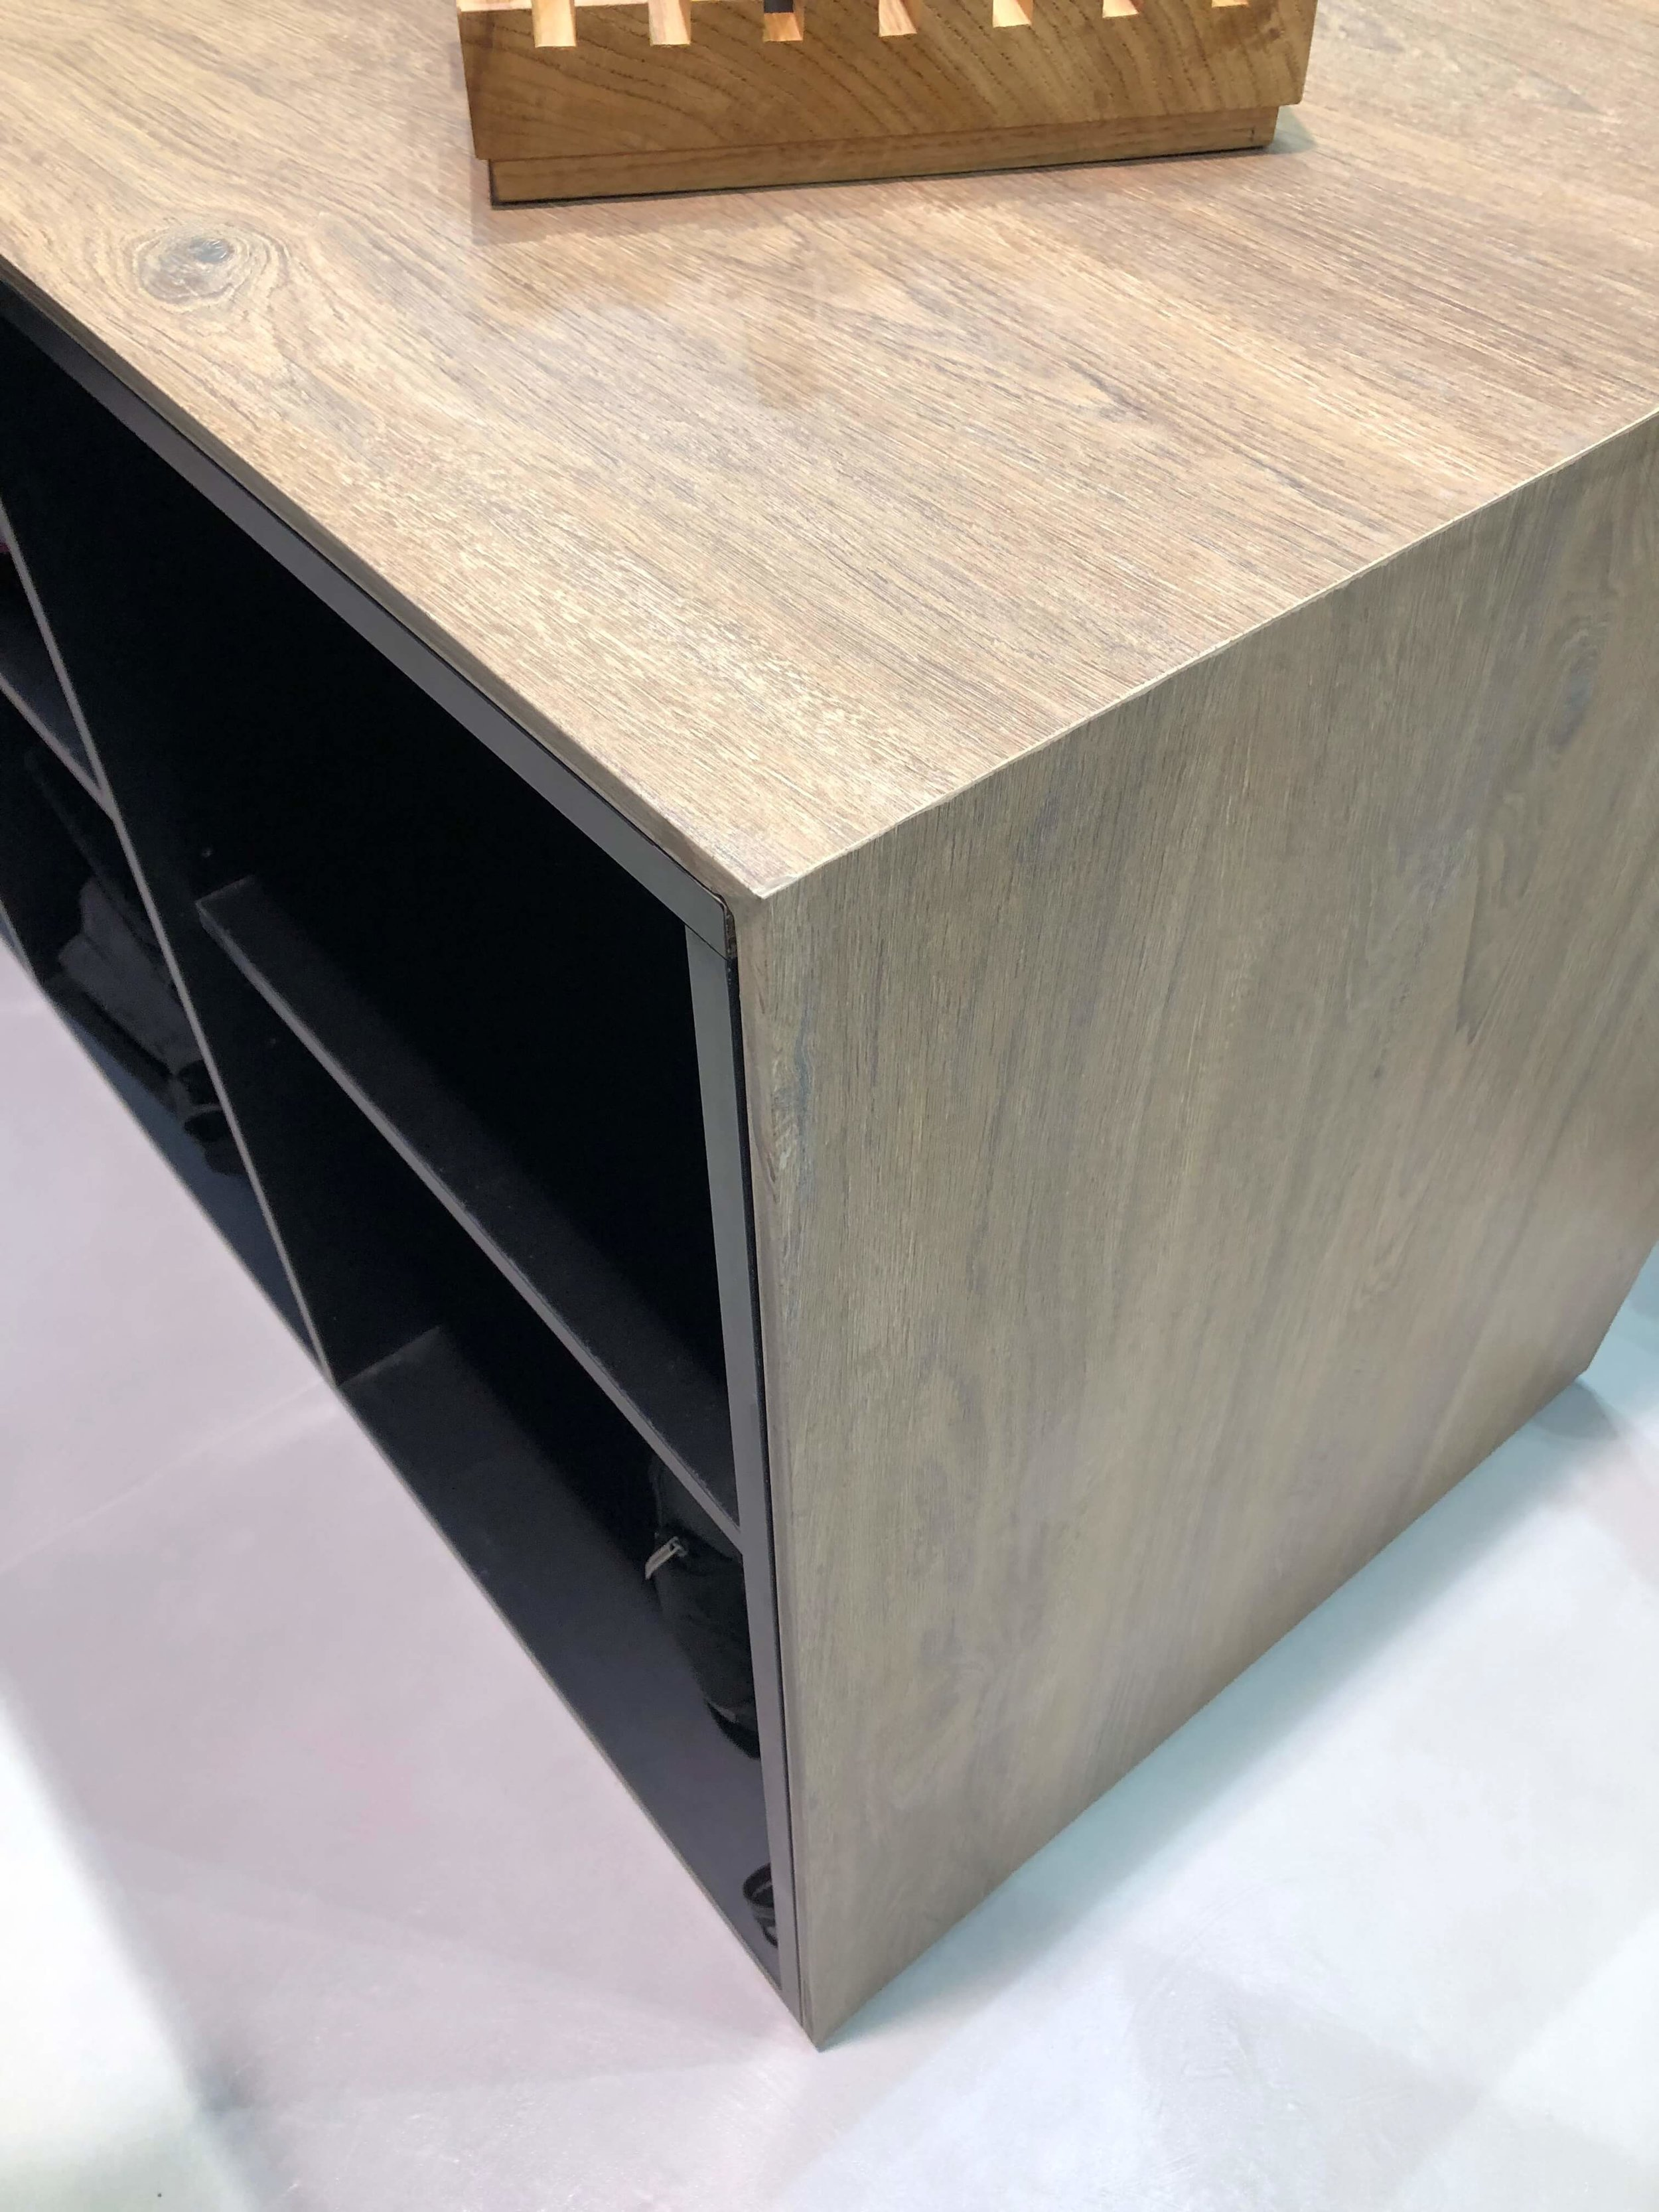 Mitered edge on wood look porcelain slab countertop with waterfall edge from Sapienstone |KBIS 2019 Surfaces Trends